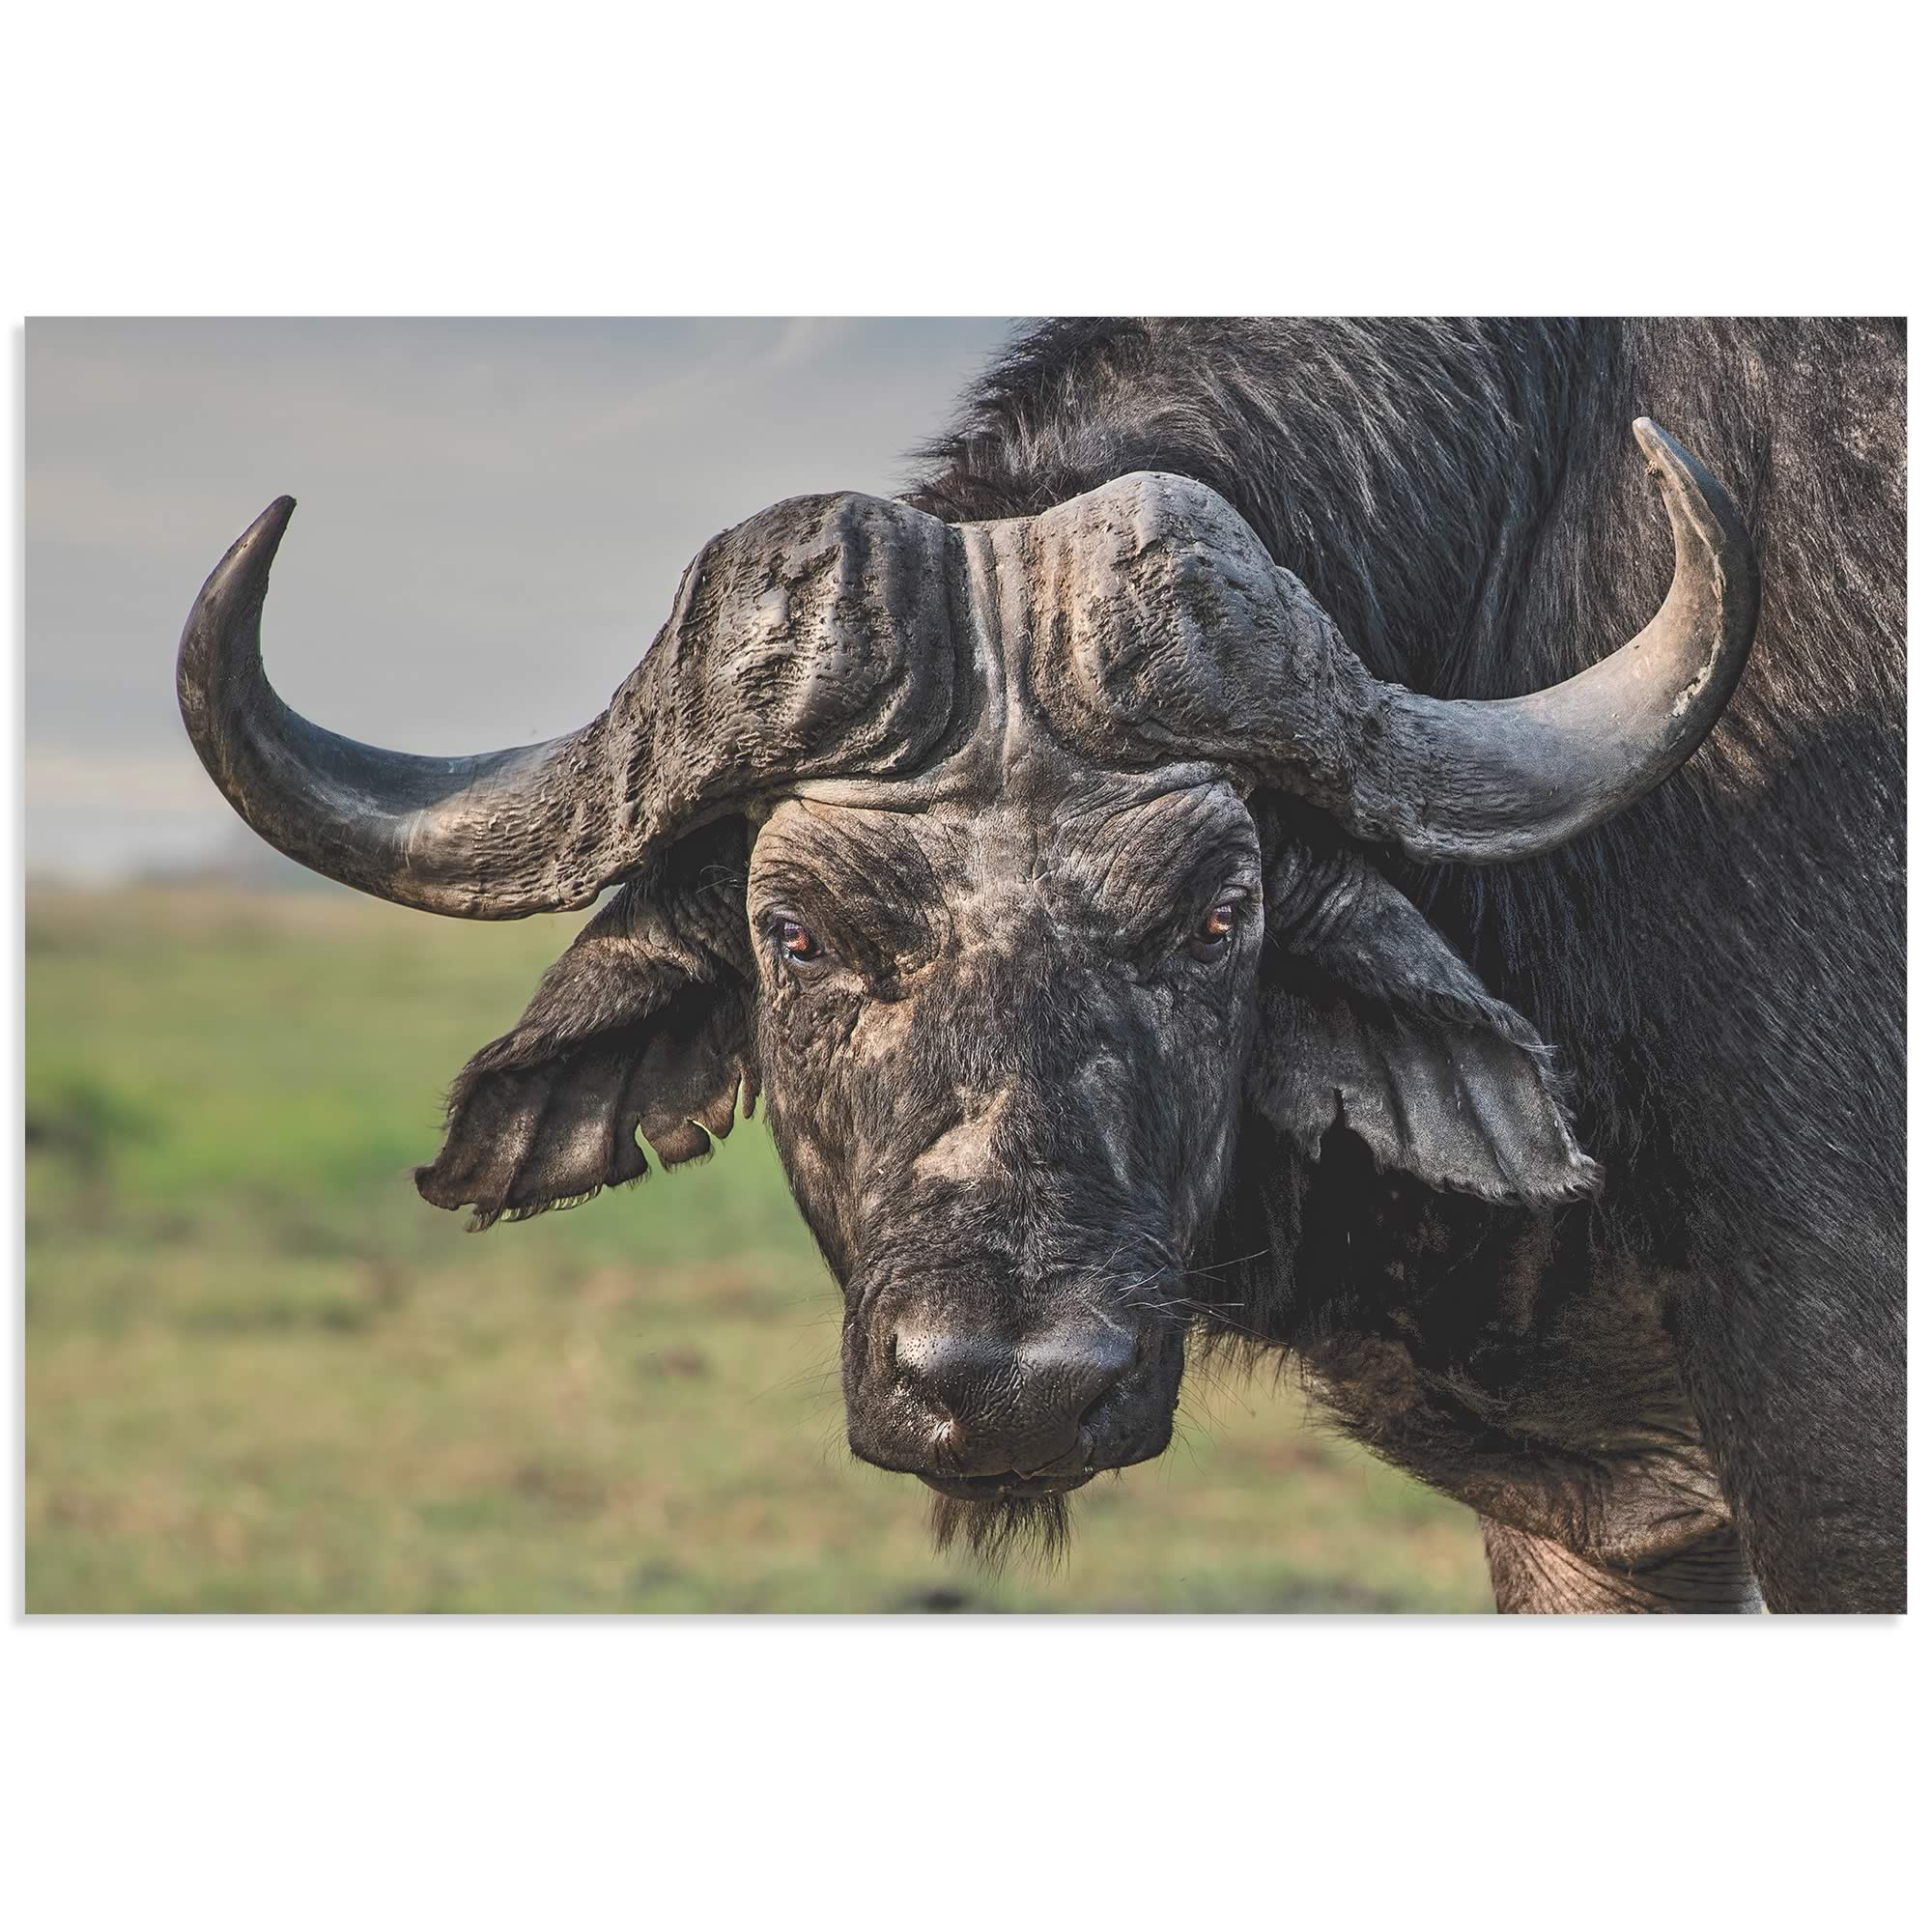 The Old Fighter Buffalo by Piet Flour